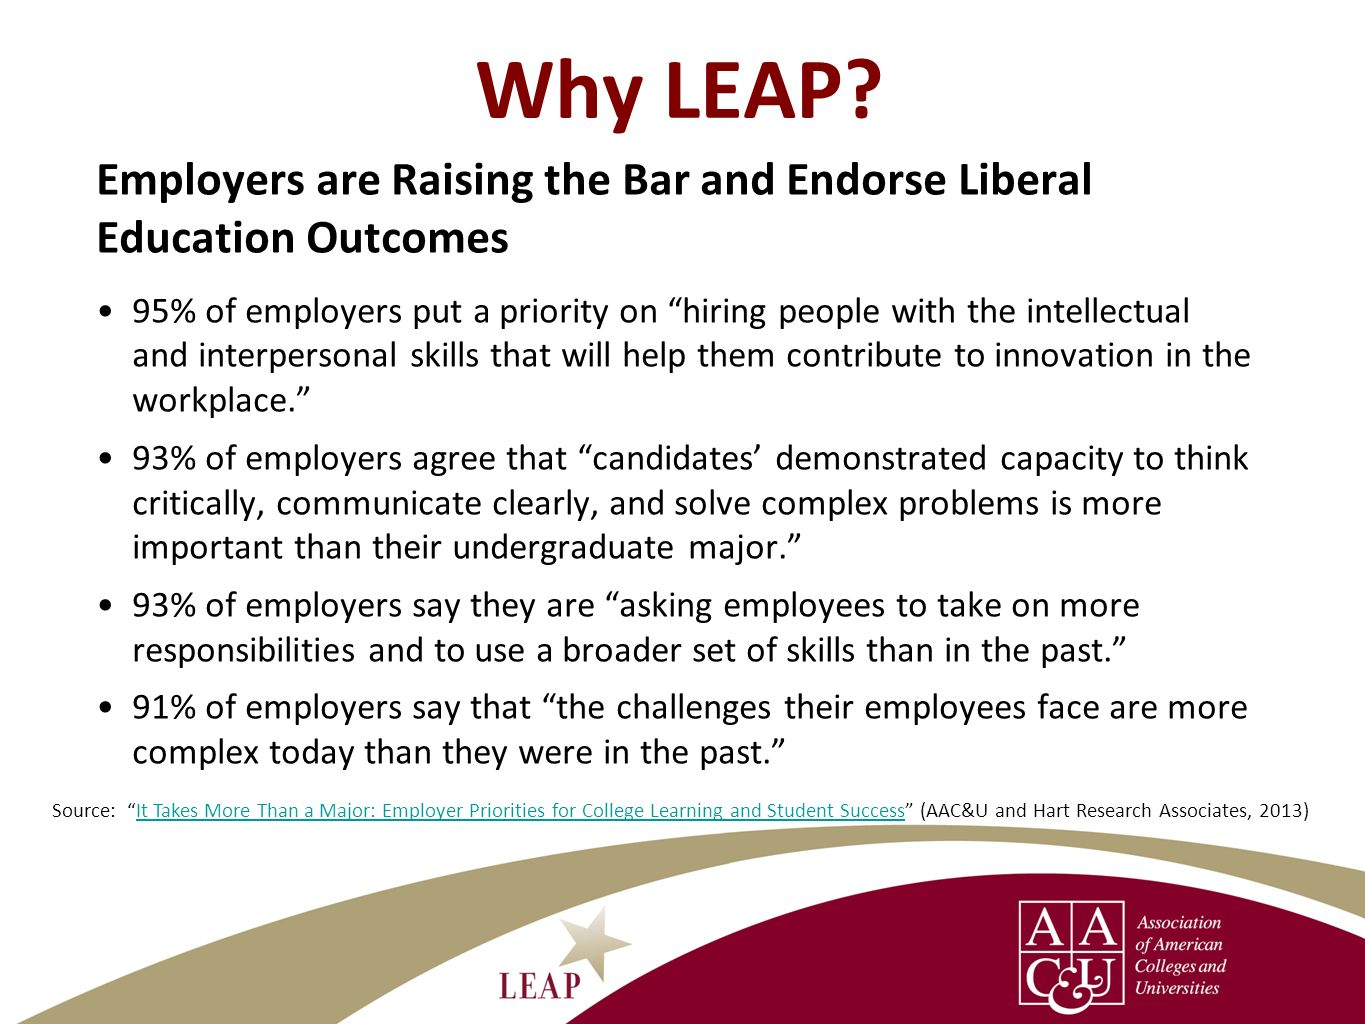 The Goals of LEAP Spark public debate about the LEAP educational vision and about what learning outcomes are essential for all students; create more informed public support for higher education and for changes to improve quality Challenge the belief that students must choose either a liberal education or a practical education Help all students understand, prepare for, and achieve essential learning outcomes in college Document national, state, and institutional progress in student achievement of essential learning outcomes